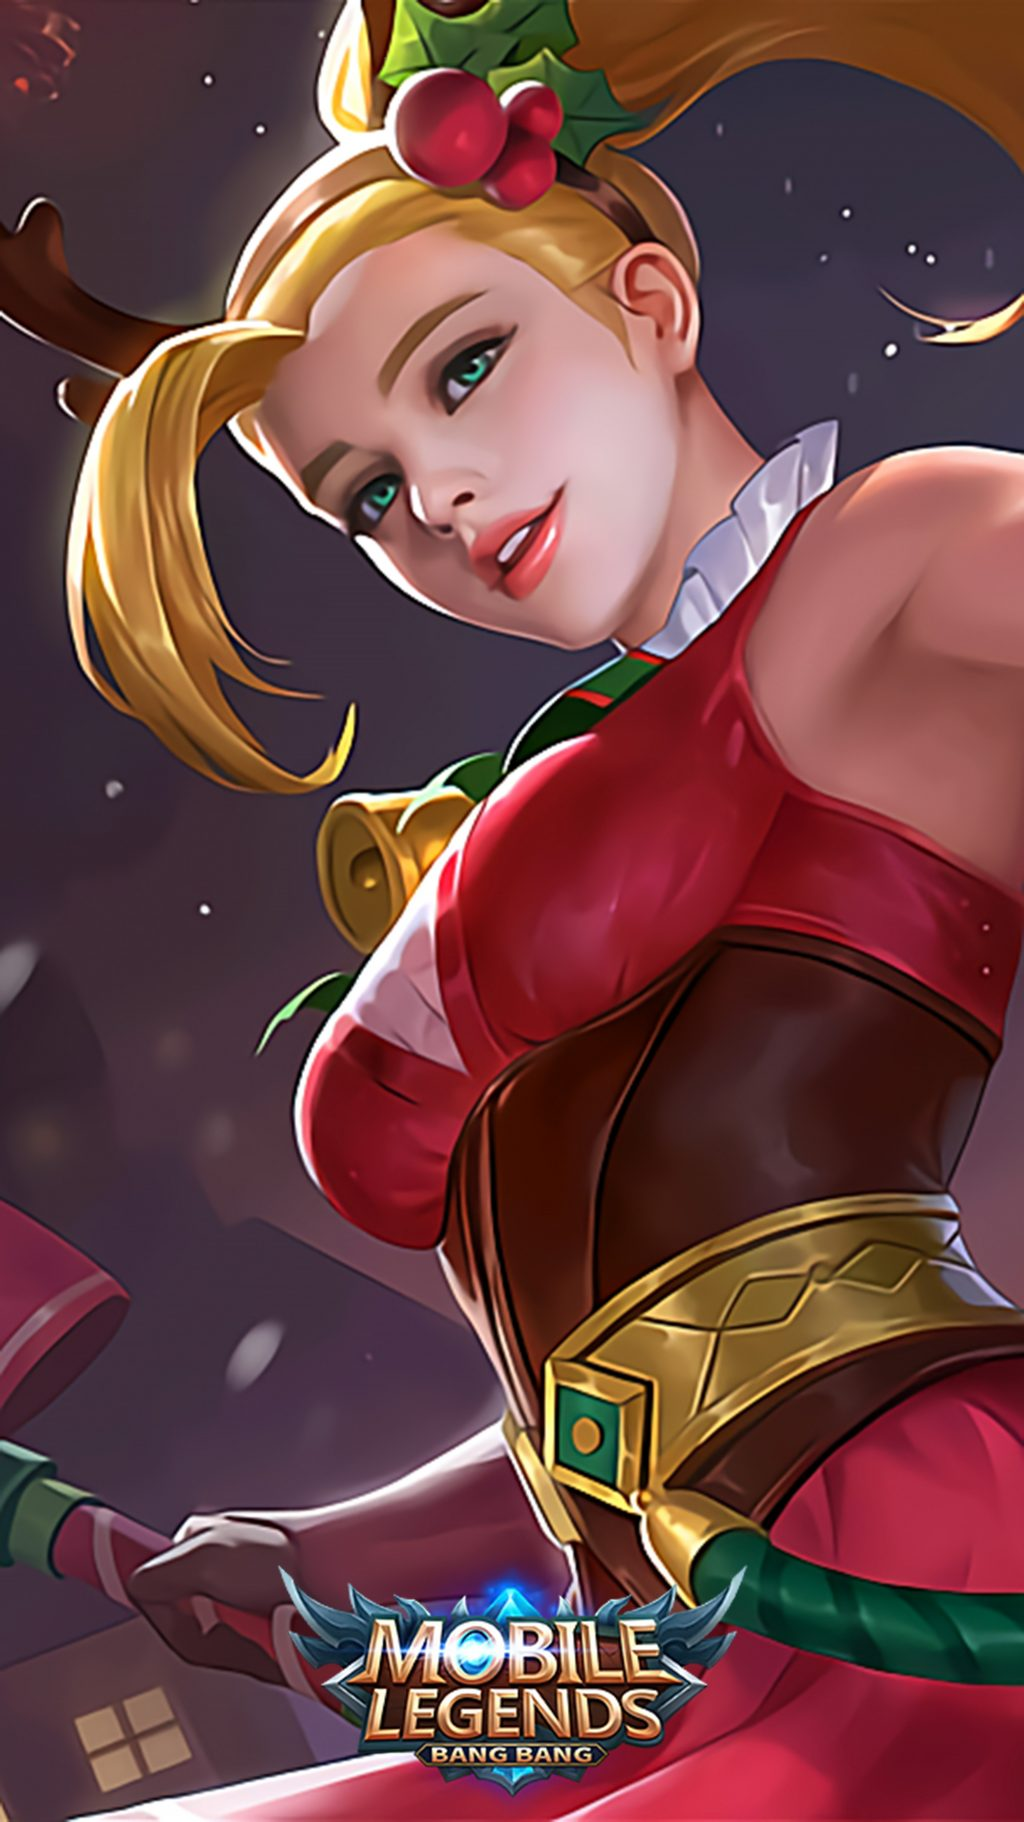 300 Wallpaper Mobile Legends HD Terbaru Dika Tekno